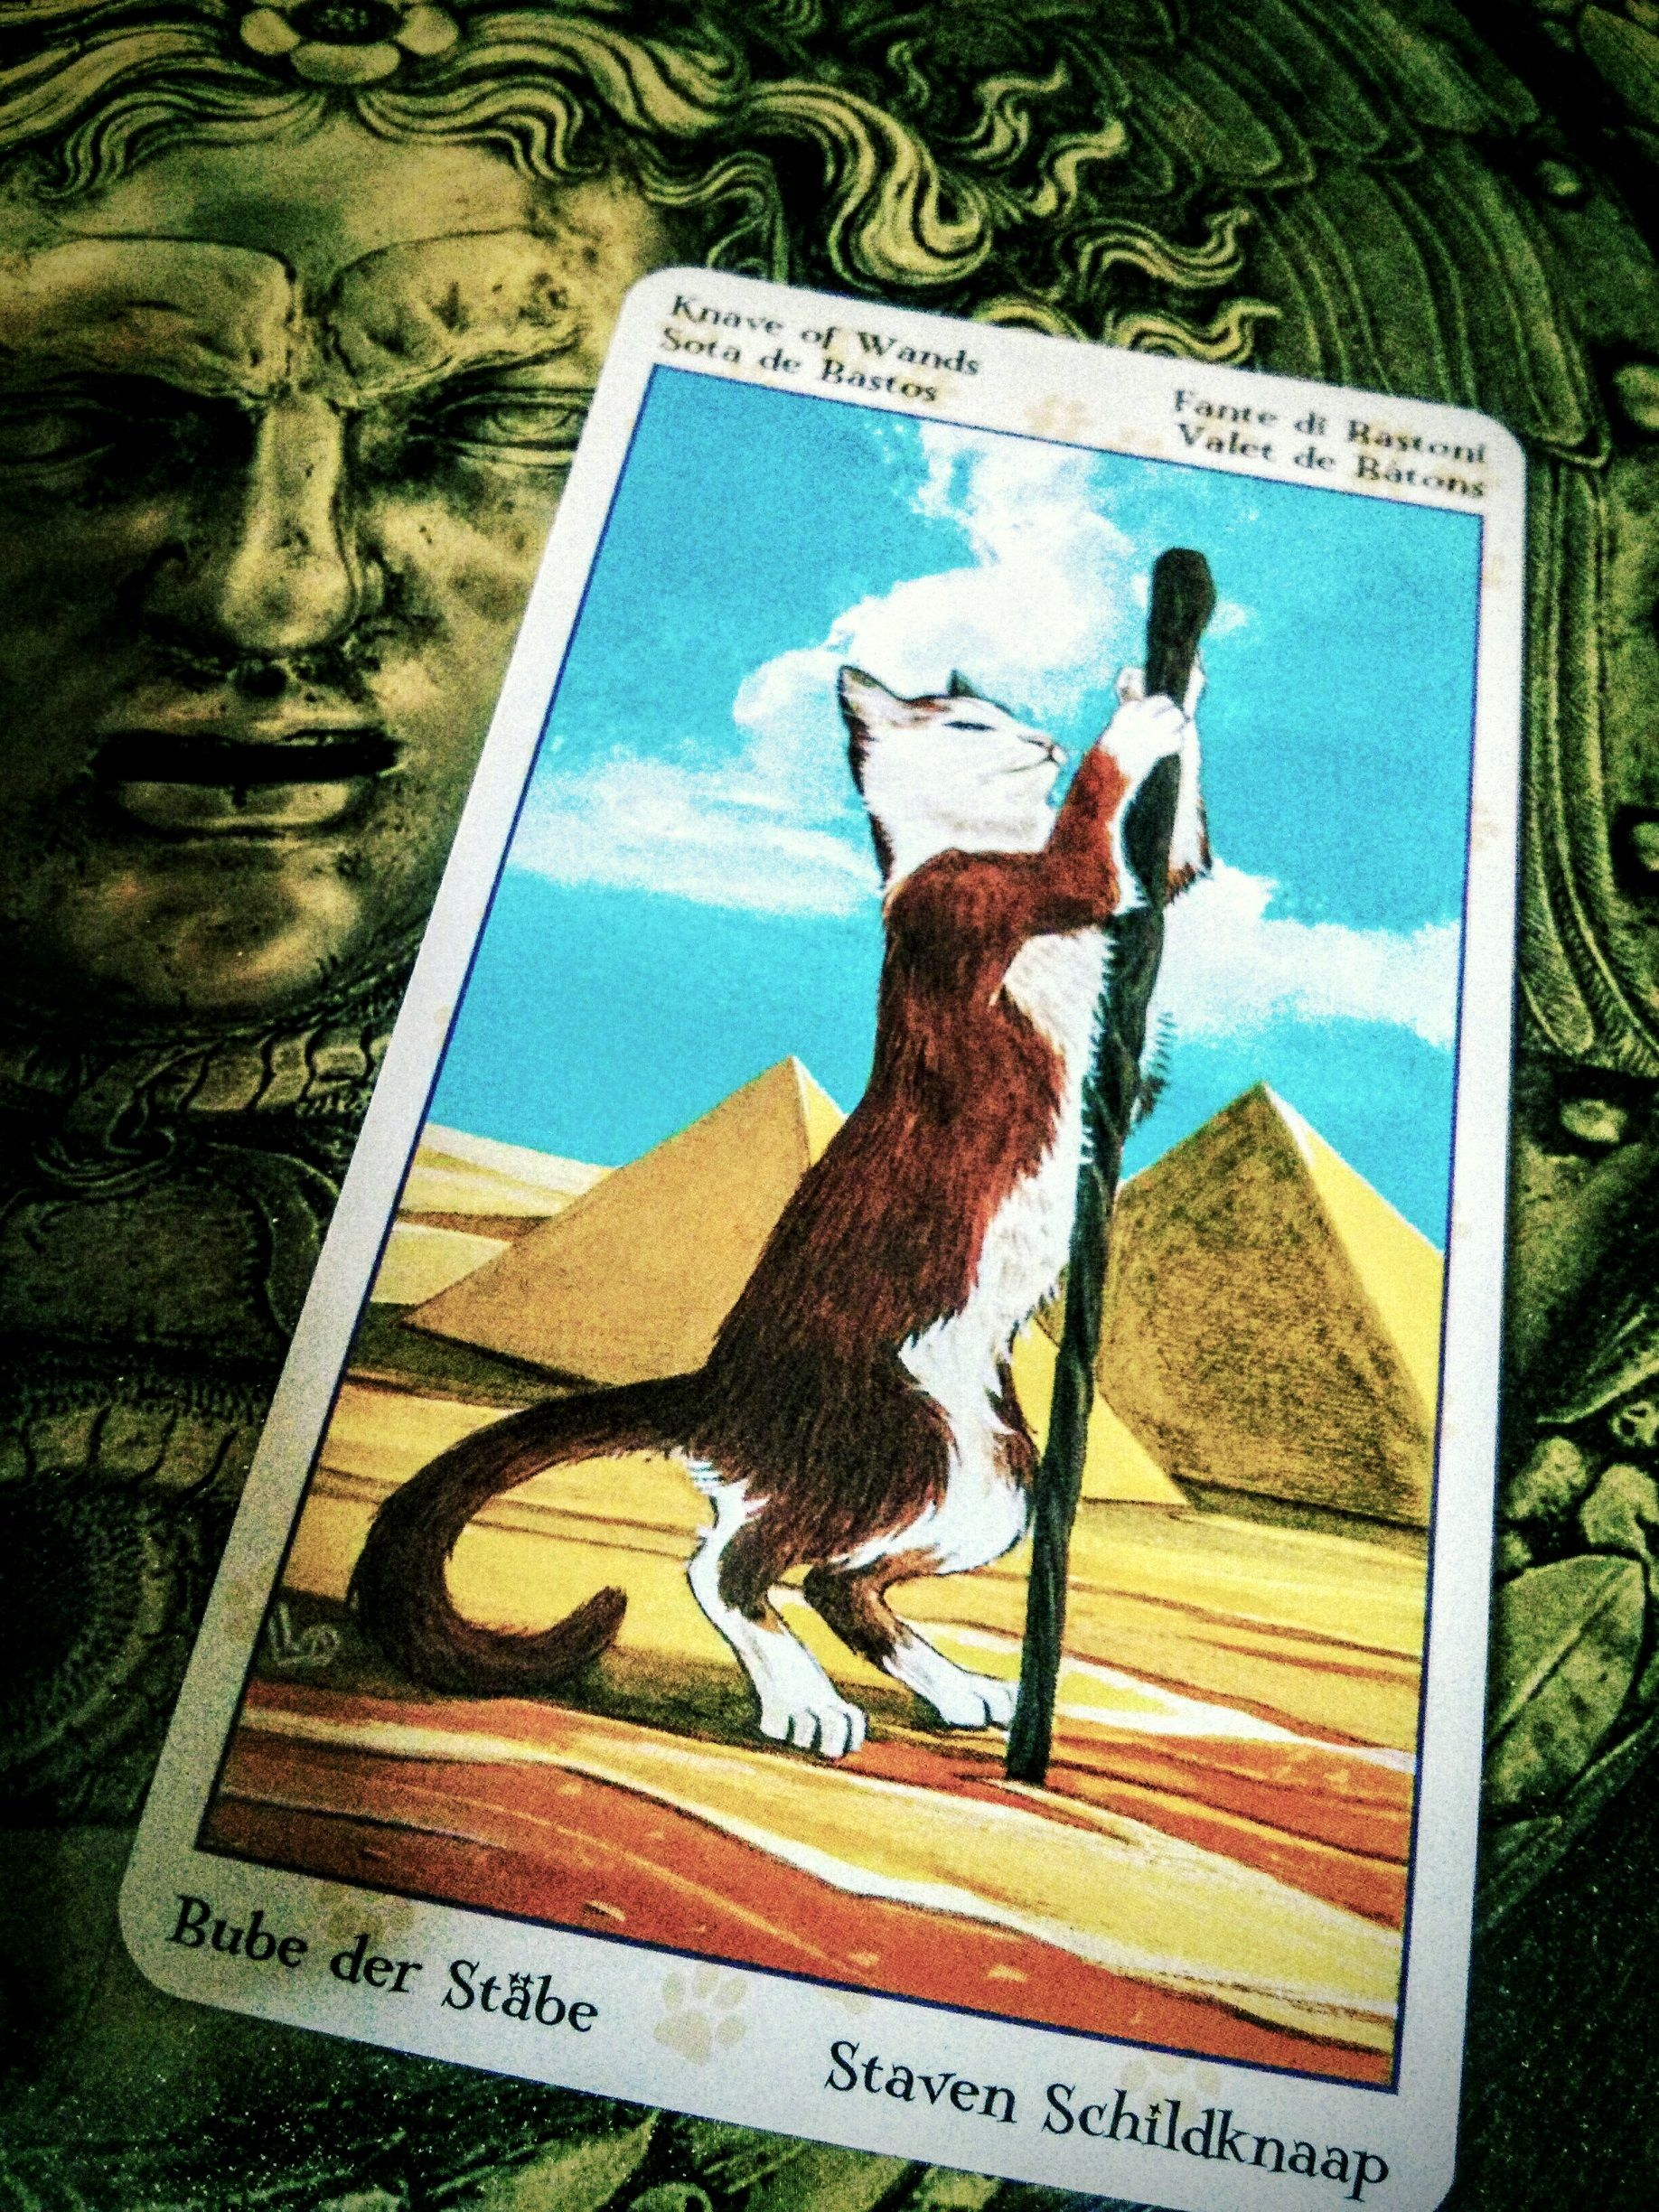 Today's Tarot Message: Page of Wands Nice energy for a Friday! Let yourself be a kid today, approach your day with a spirit of spontaneity, adventure and creativity. Get fired up about something, have fun! This is a say YES kind of day.#Tarot of the Pagan Cats